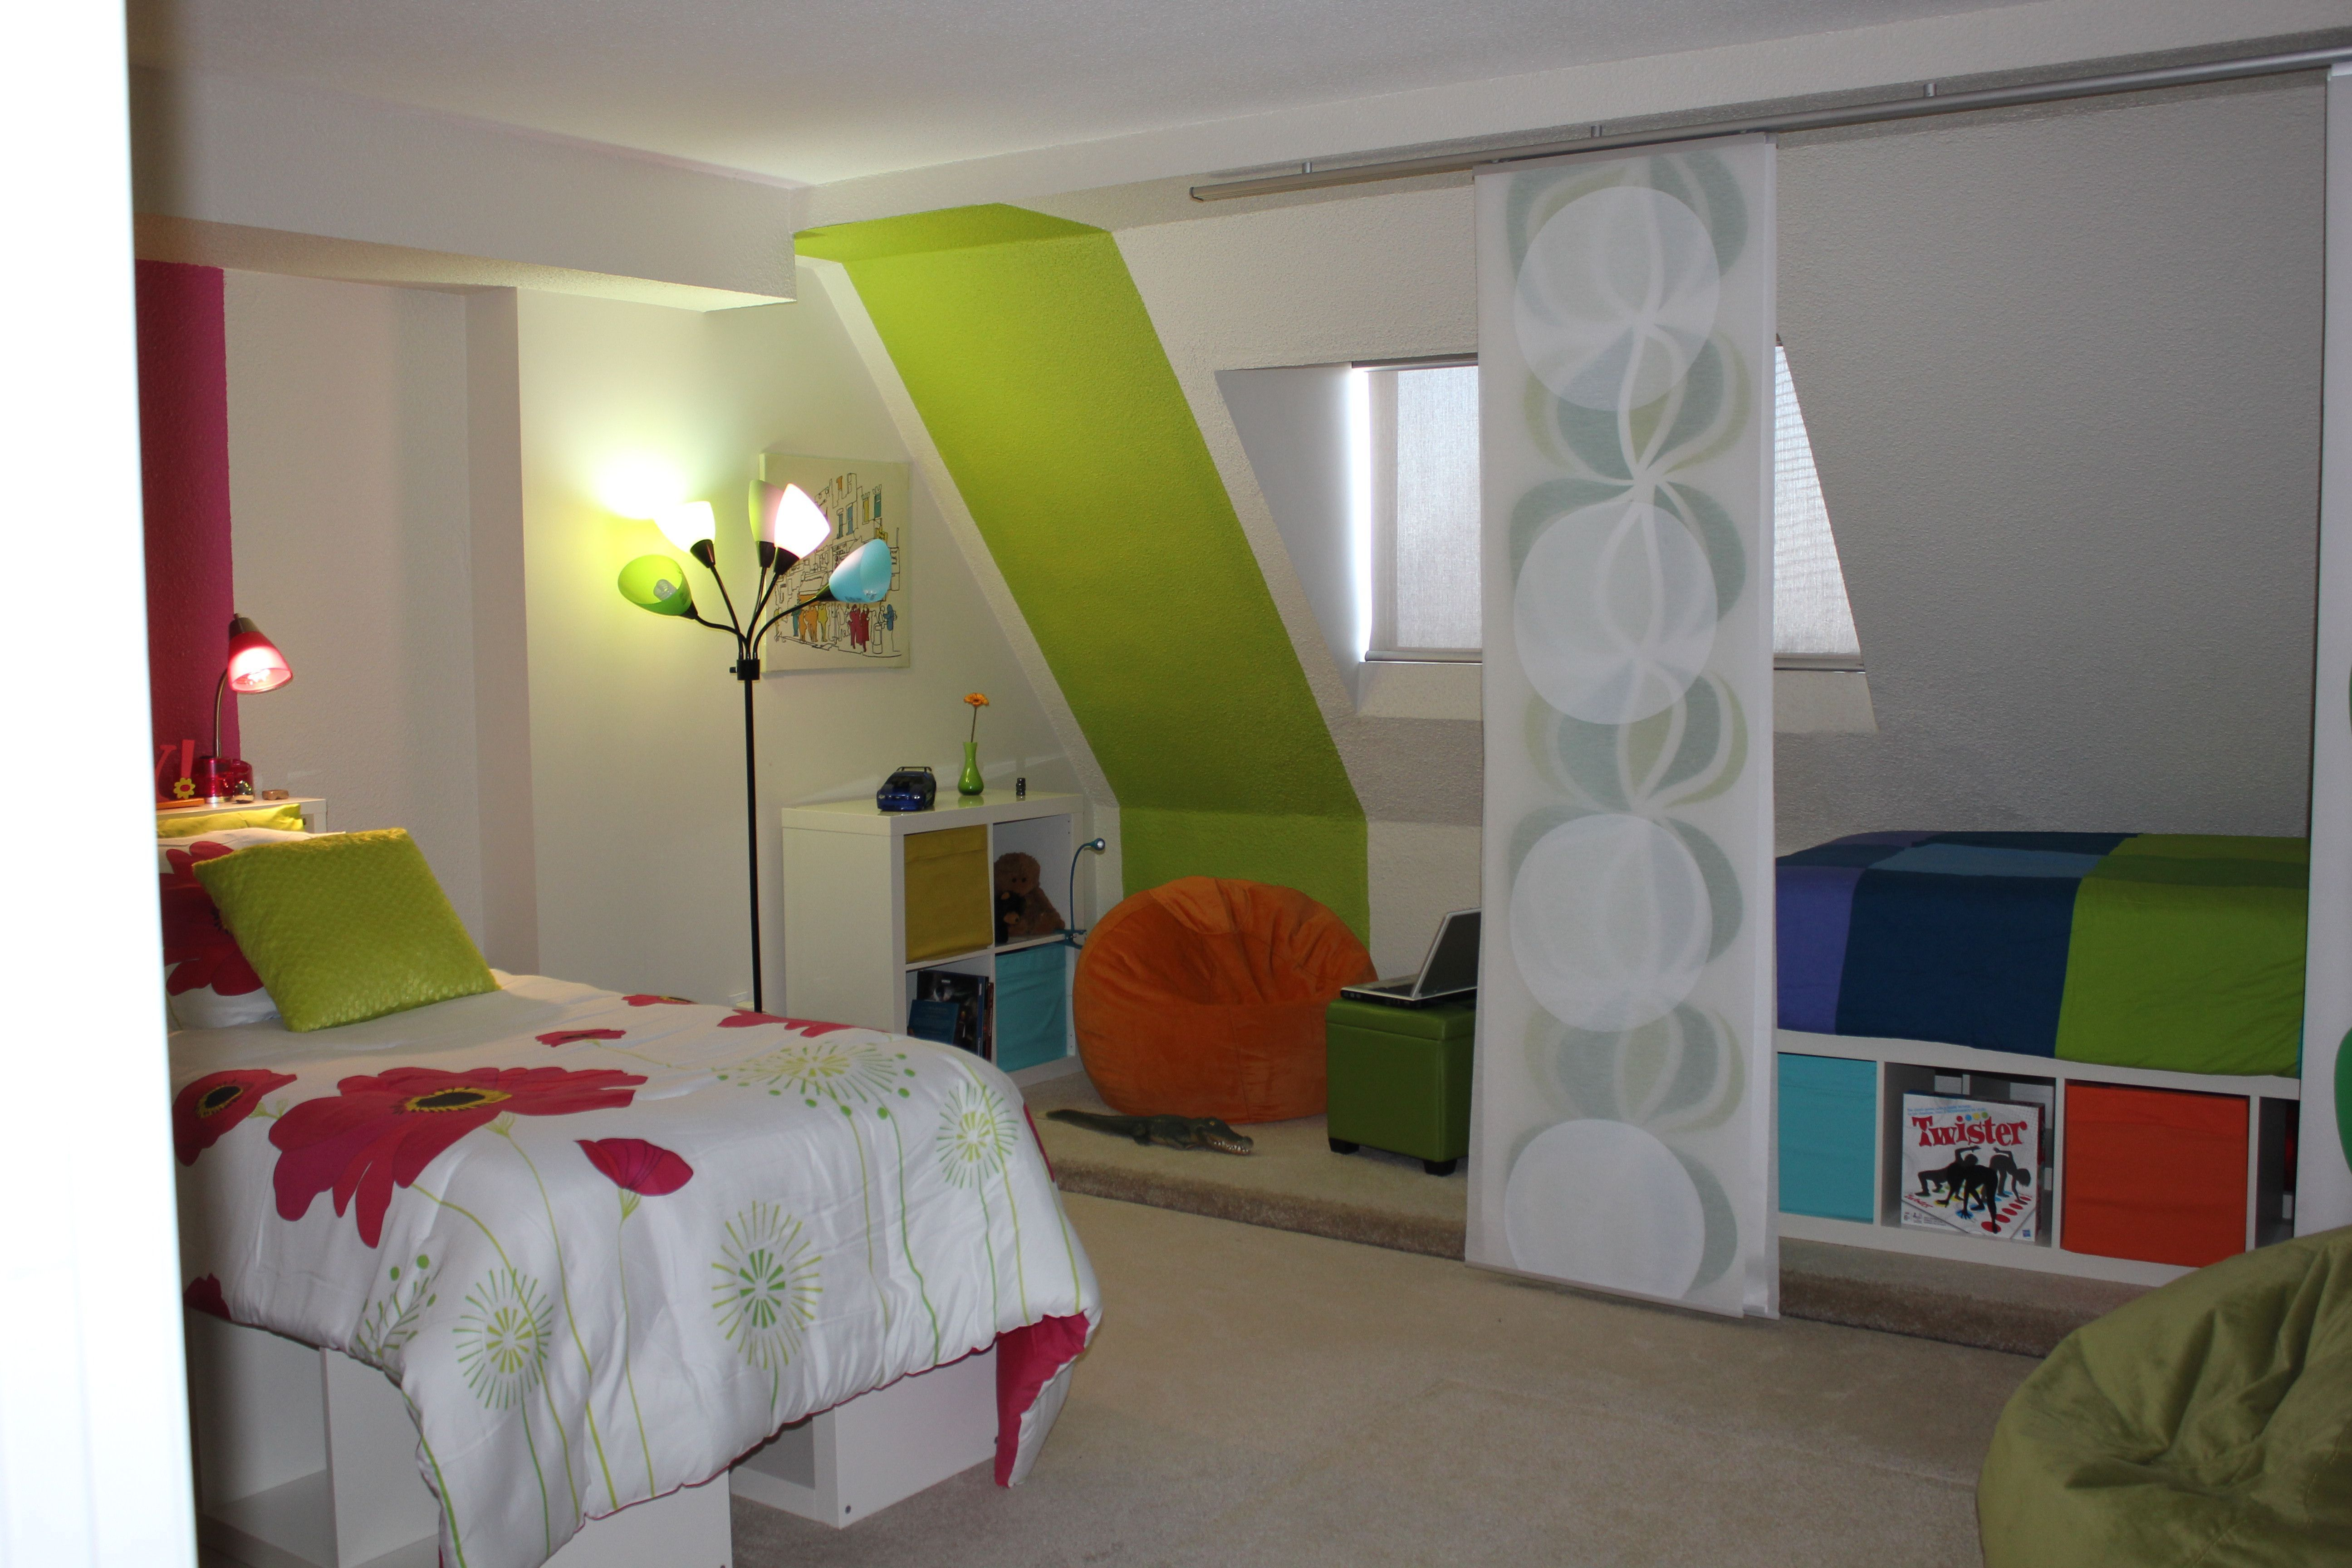 Shared bedroom room dividers panel curtains roomdivideronwheels